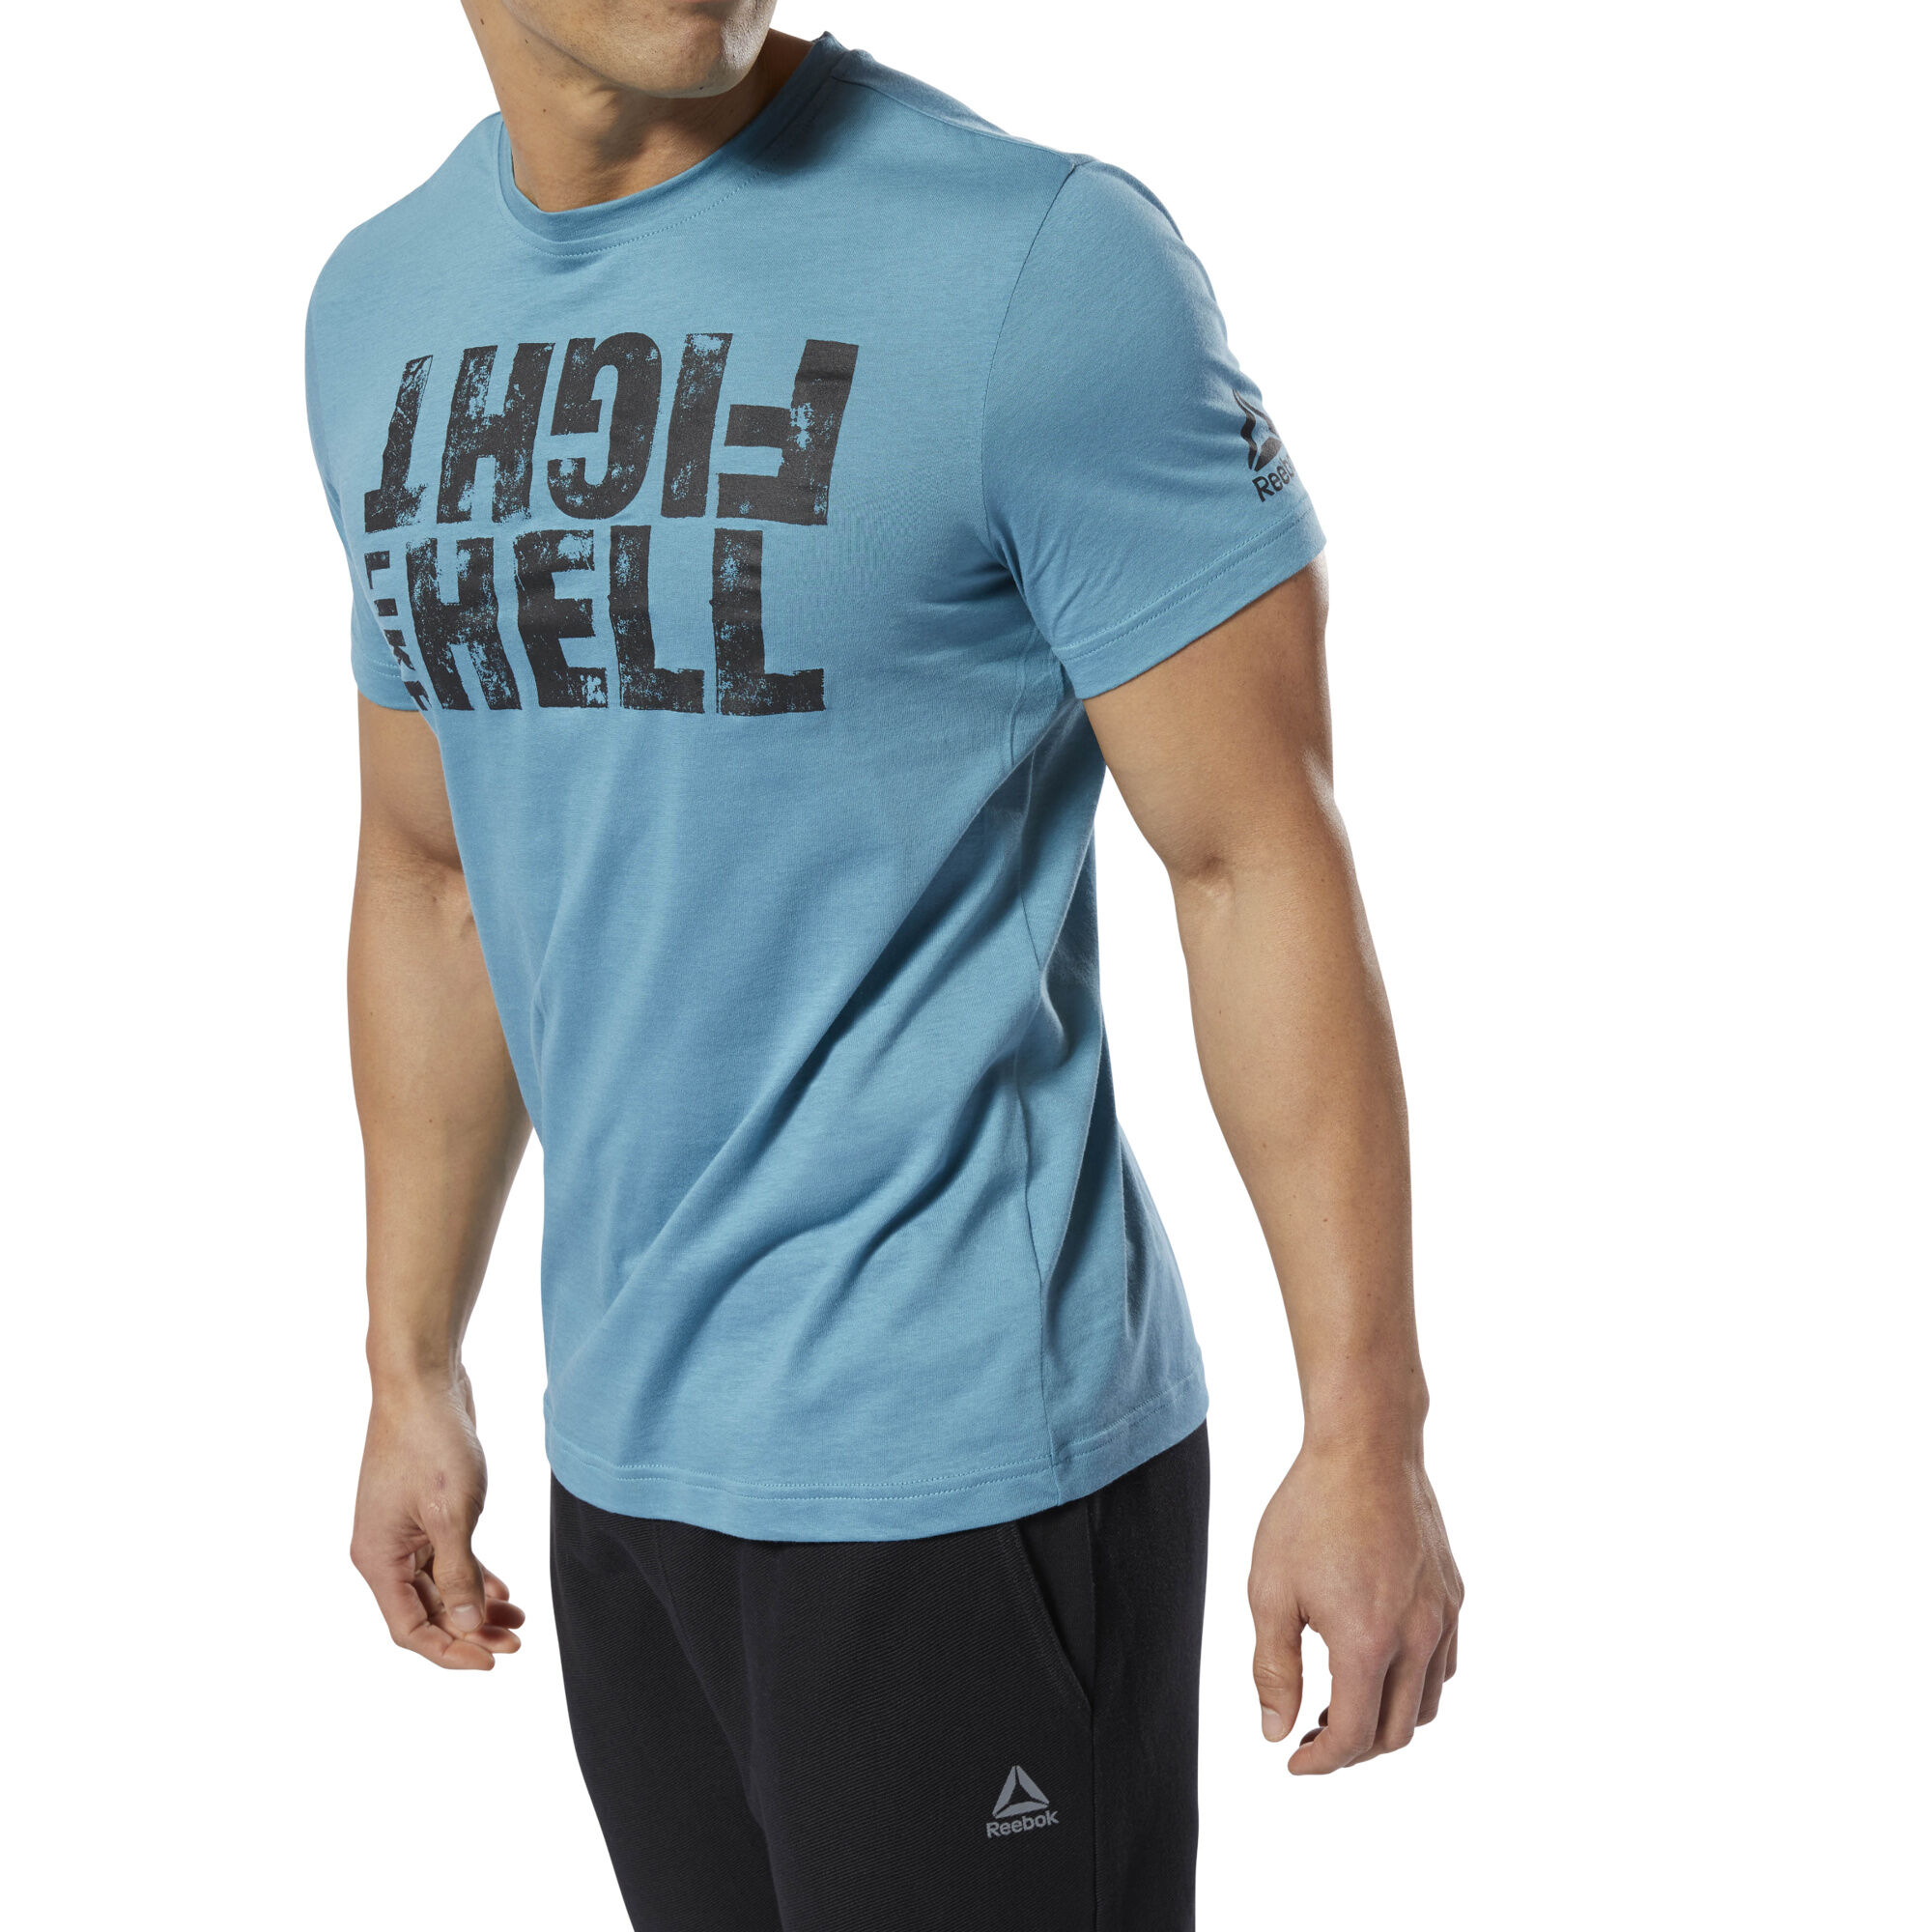 Reebok Men's Fight Like Hell Tee in Mineral Mist Size M - Training Apparel